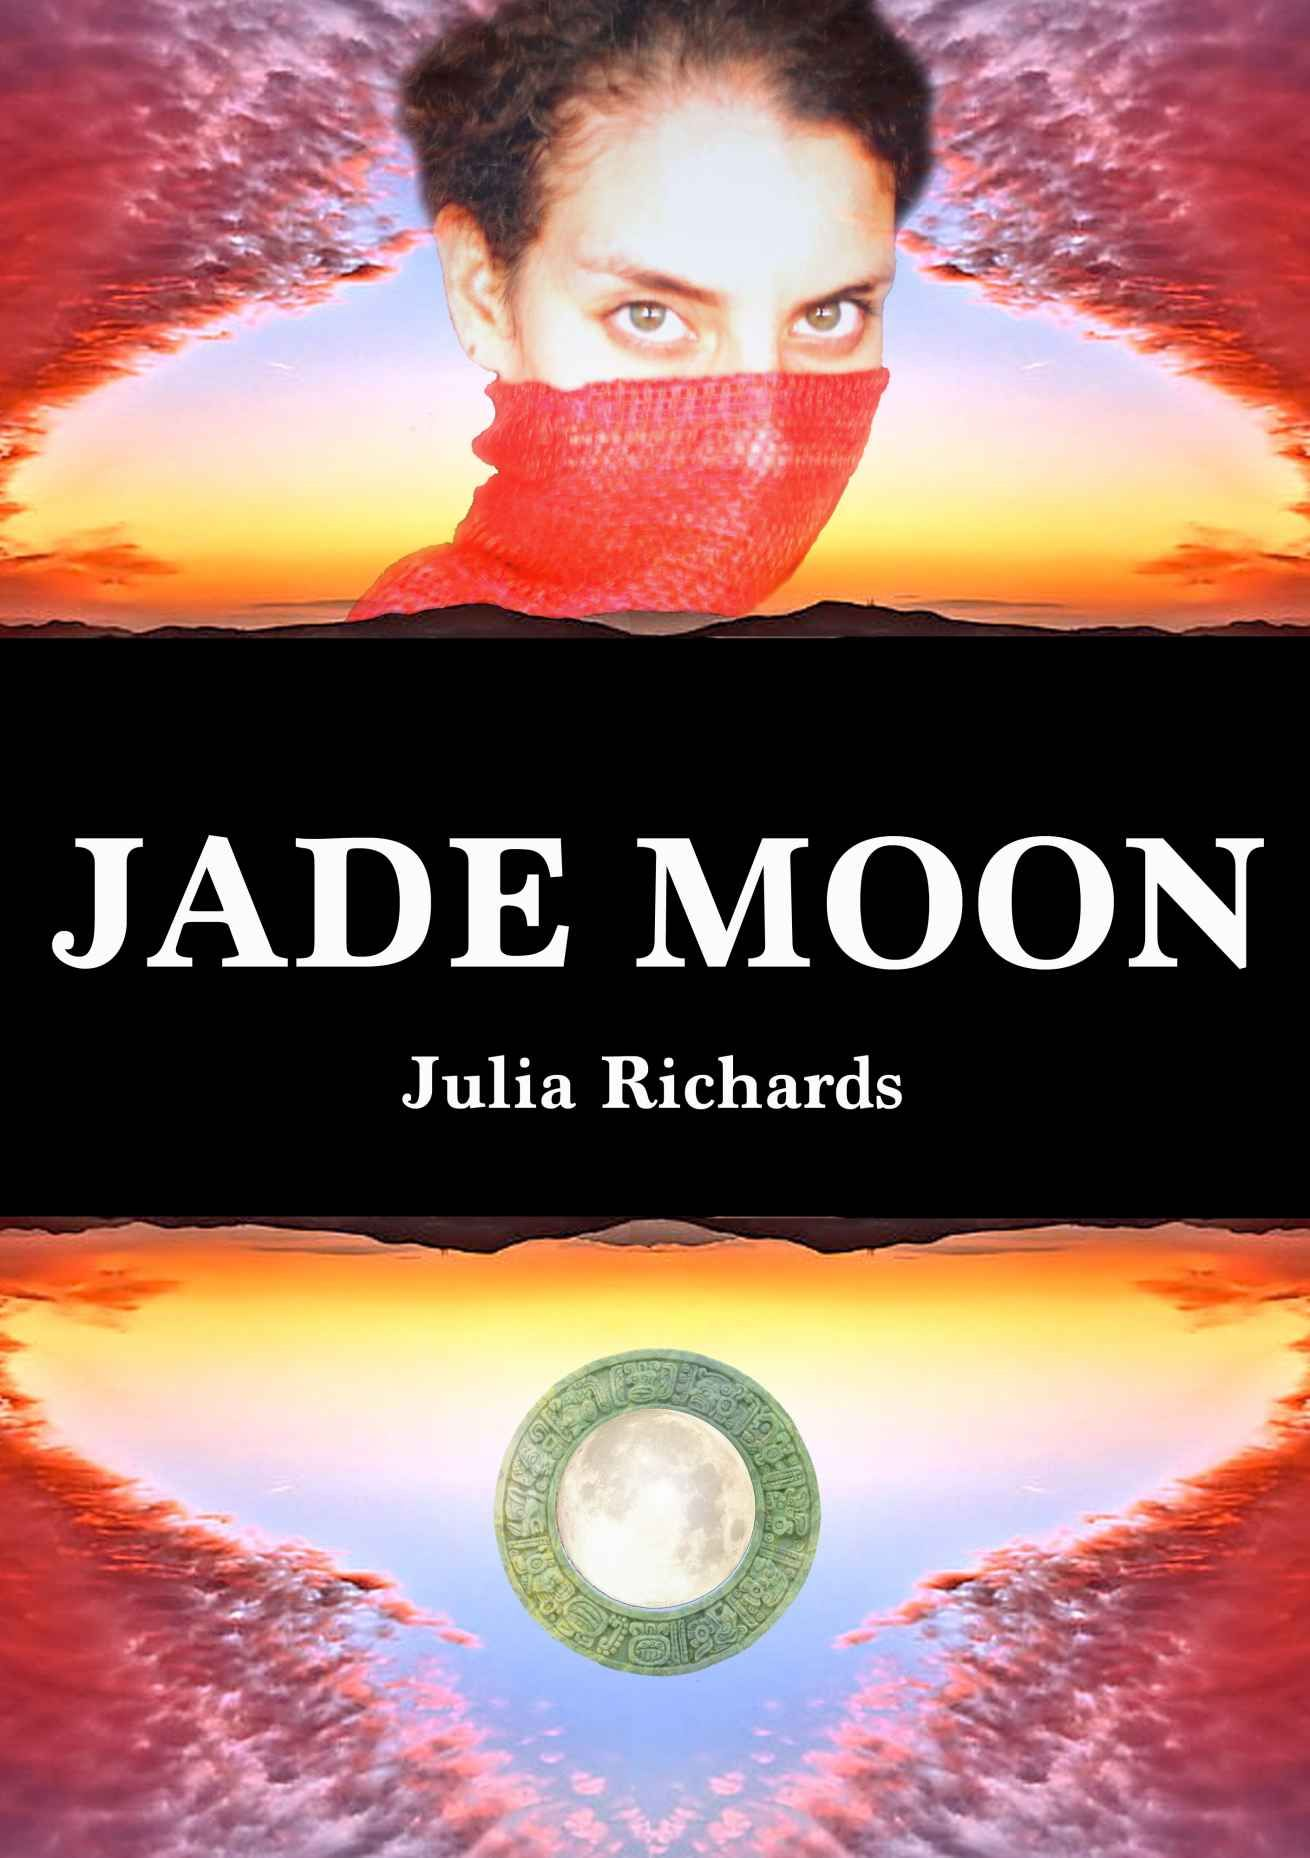 Amazon.com: Jade Moon (Celestial War Book 1) eBook: Julia Richards: Kindle Store